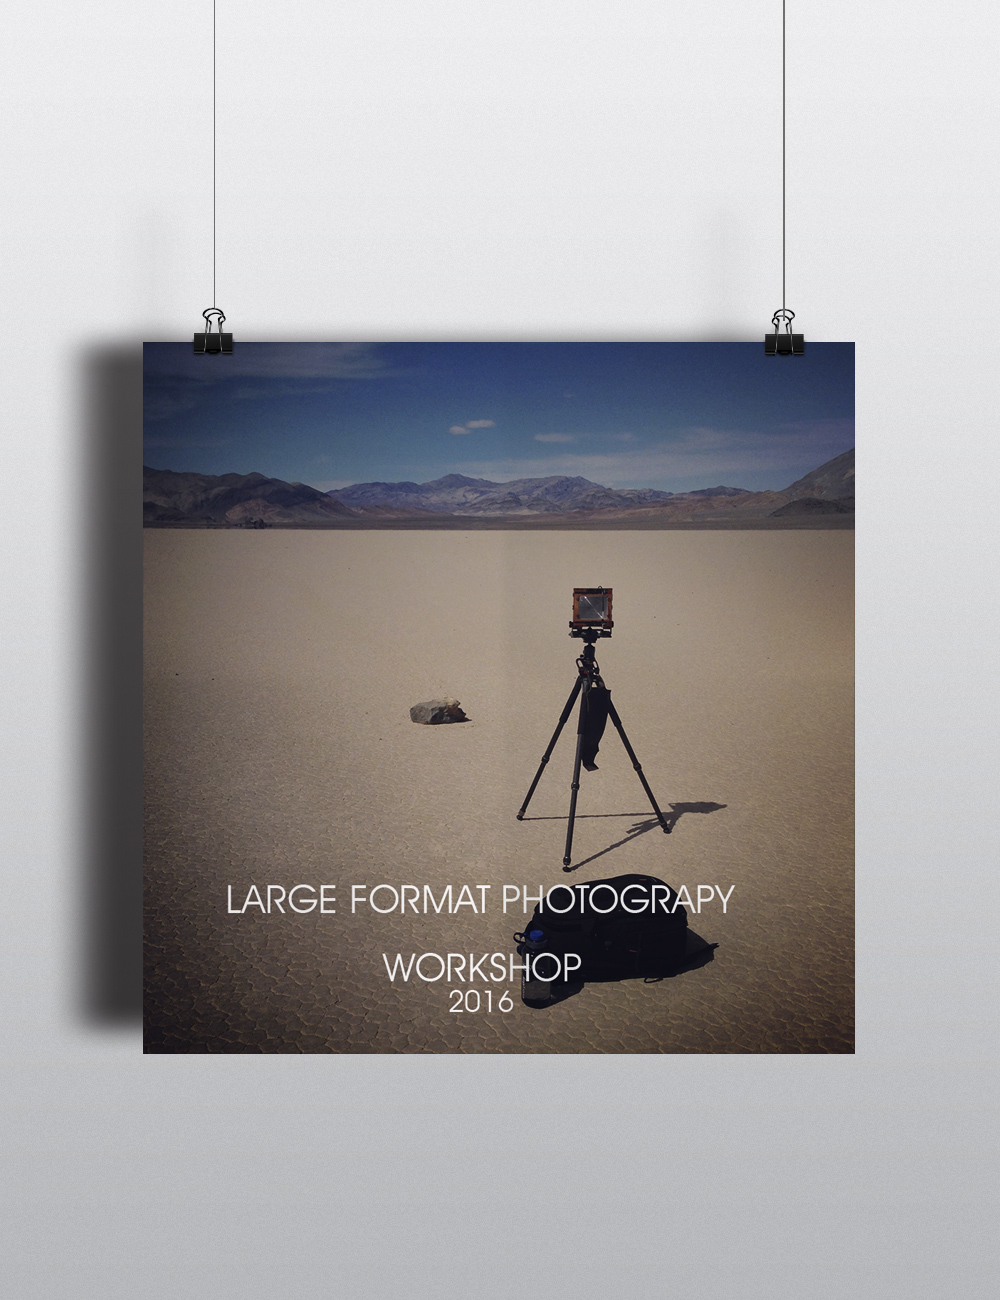 Large Formt Photography Workshop 2016